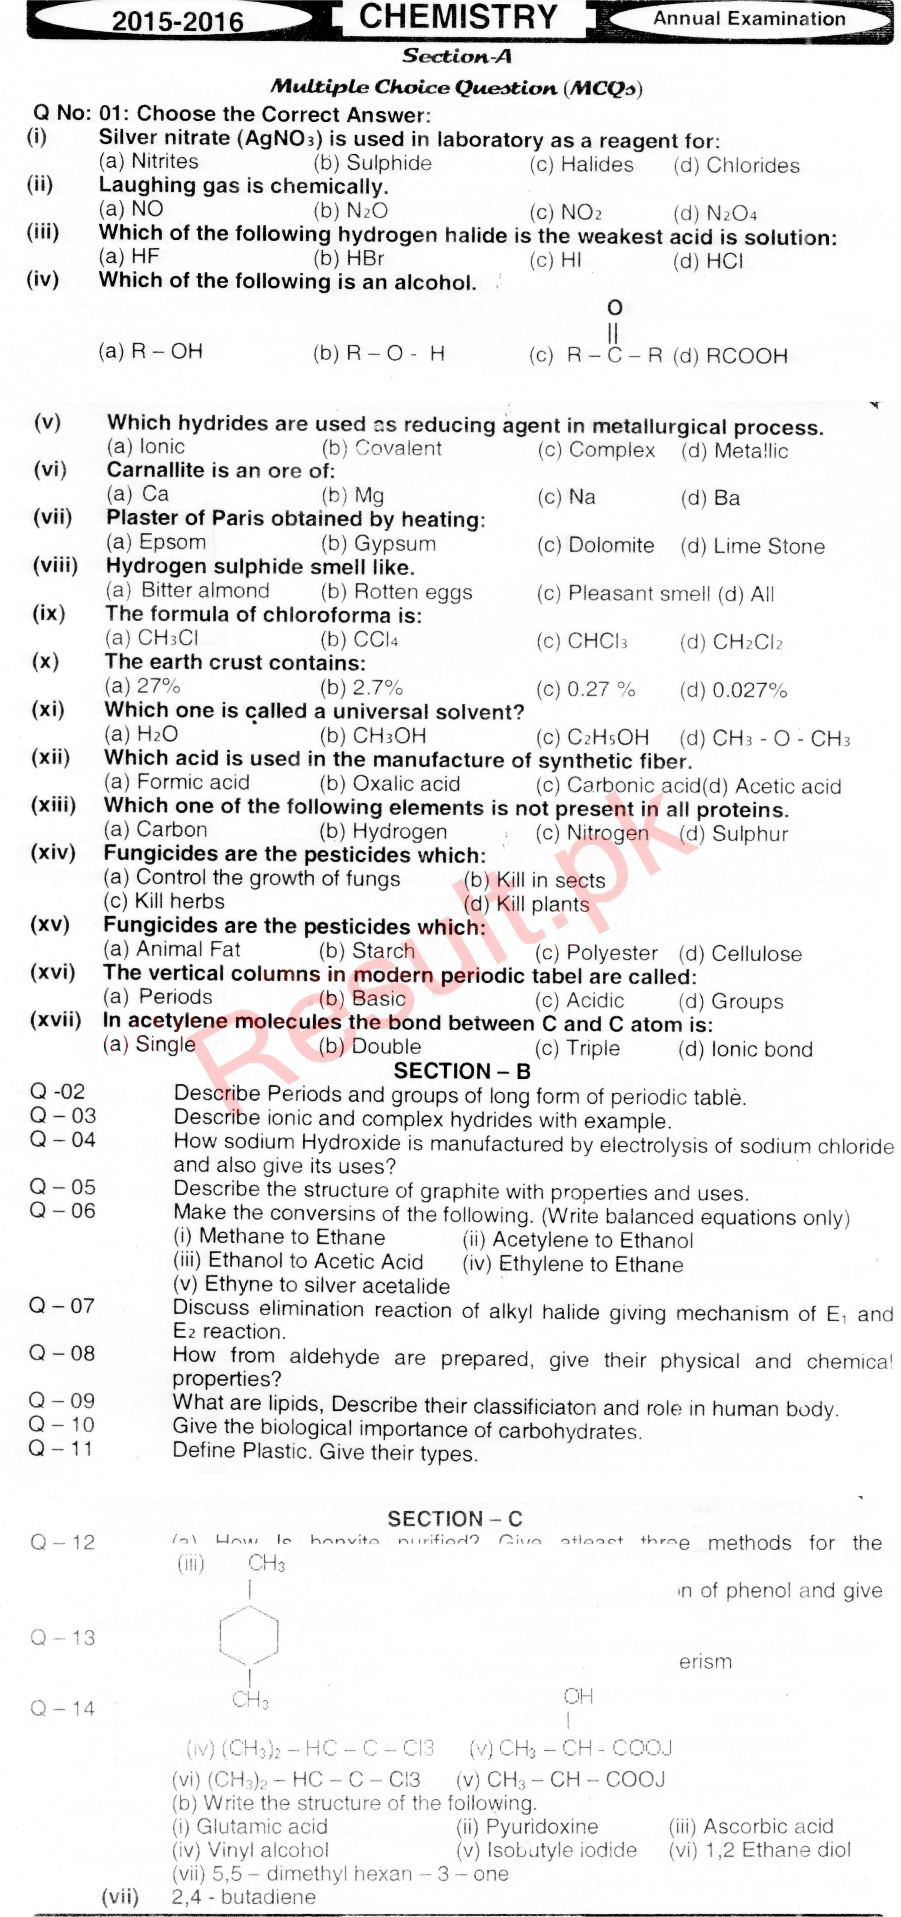 BISE Hyderabad Board Past Papers 2019 Inter Part 1 2, FA